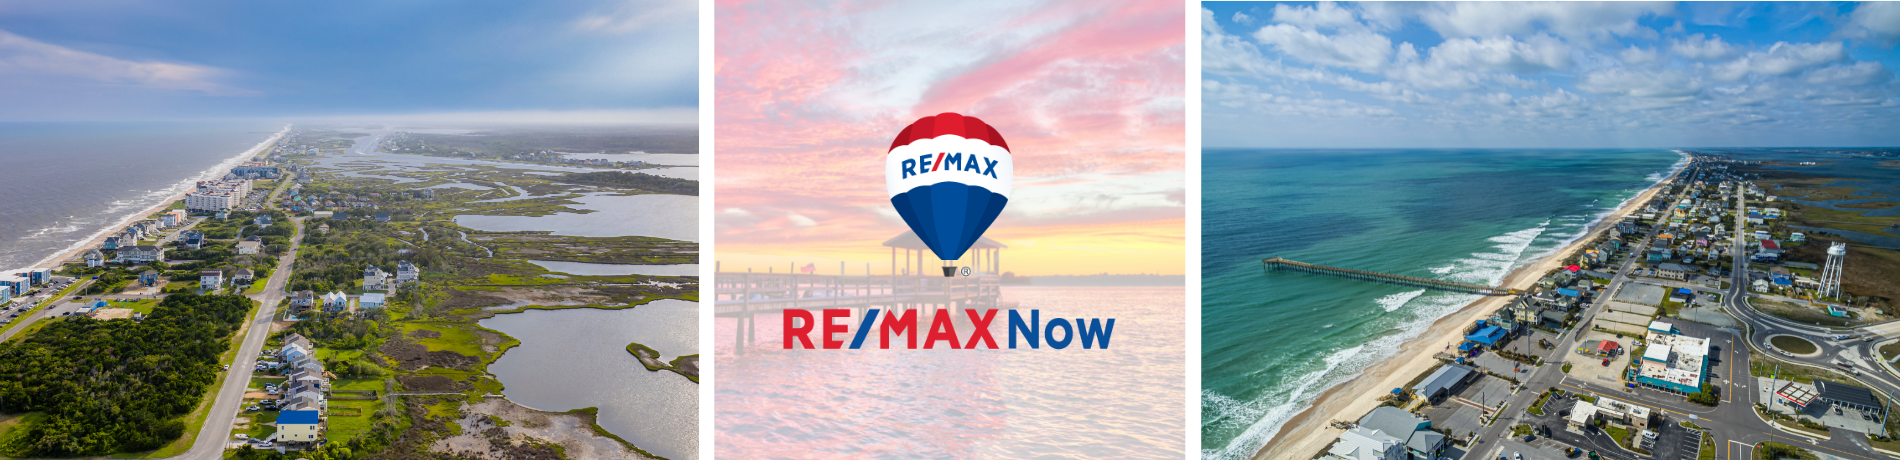 REMAX Now